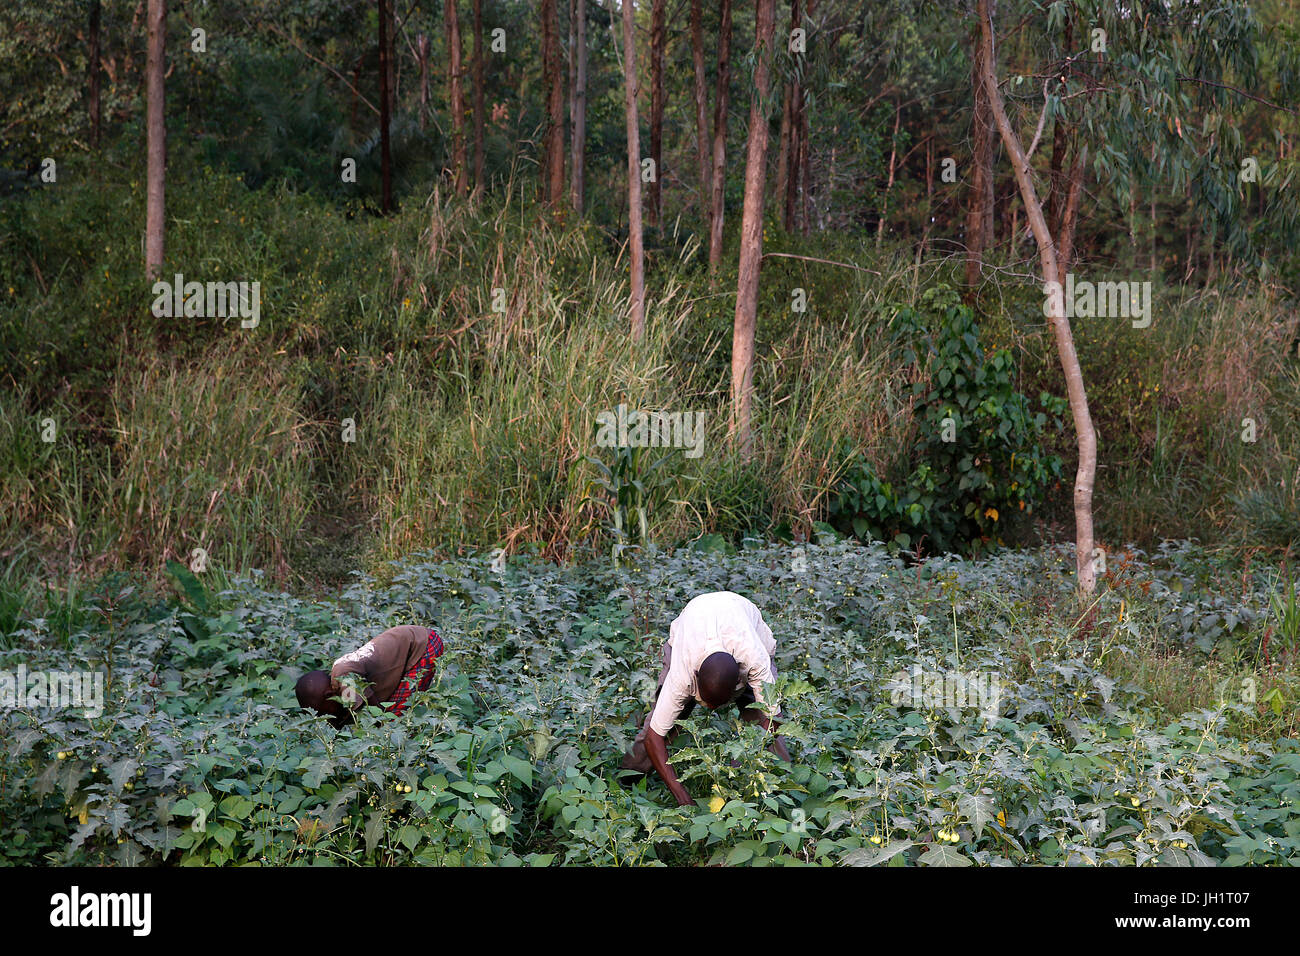 Farmer Apollo Byarunga received 2 loans from ENCOT microfinance. He is working with his son. Uganda. - Stock Image